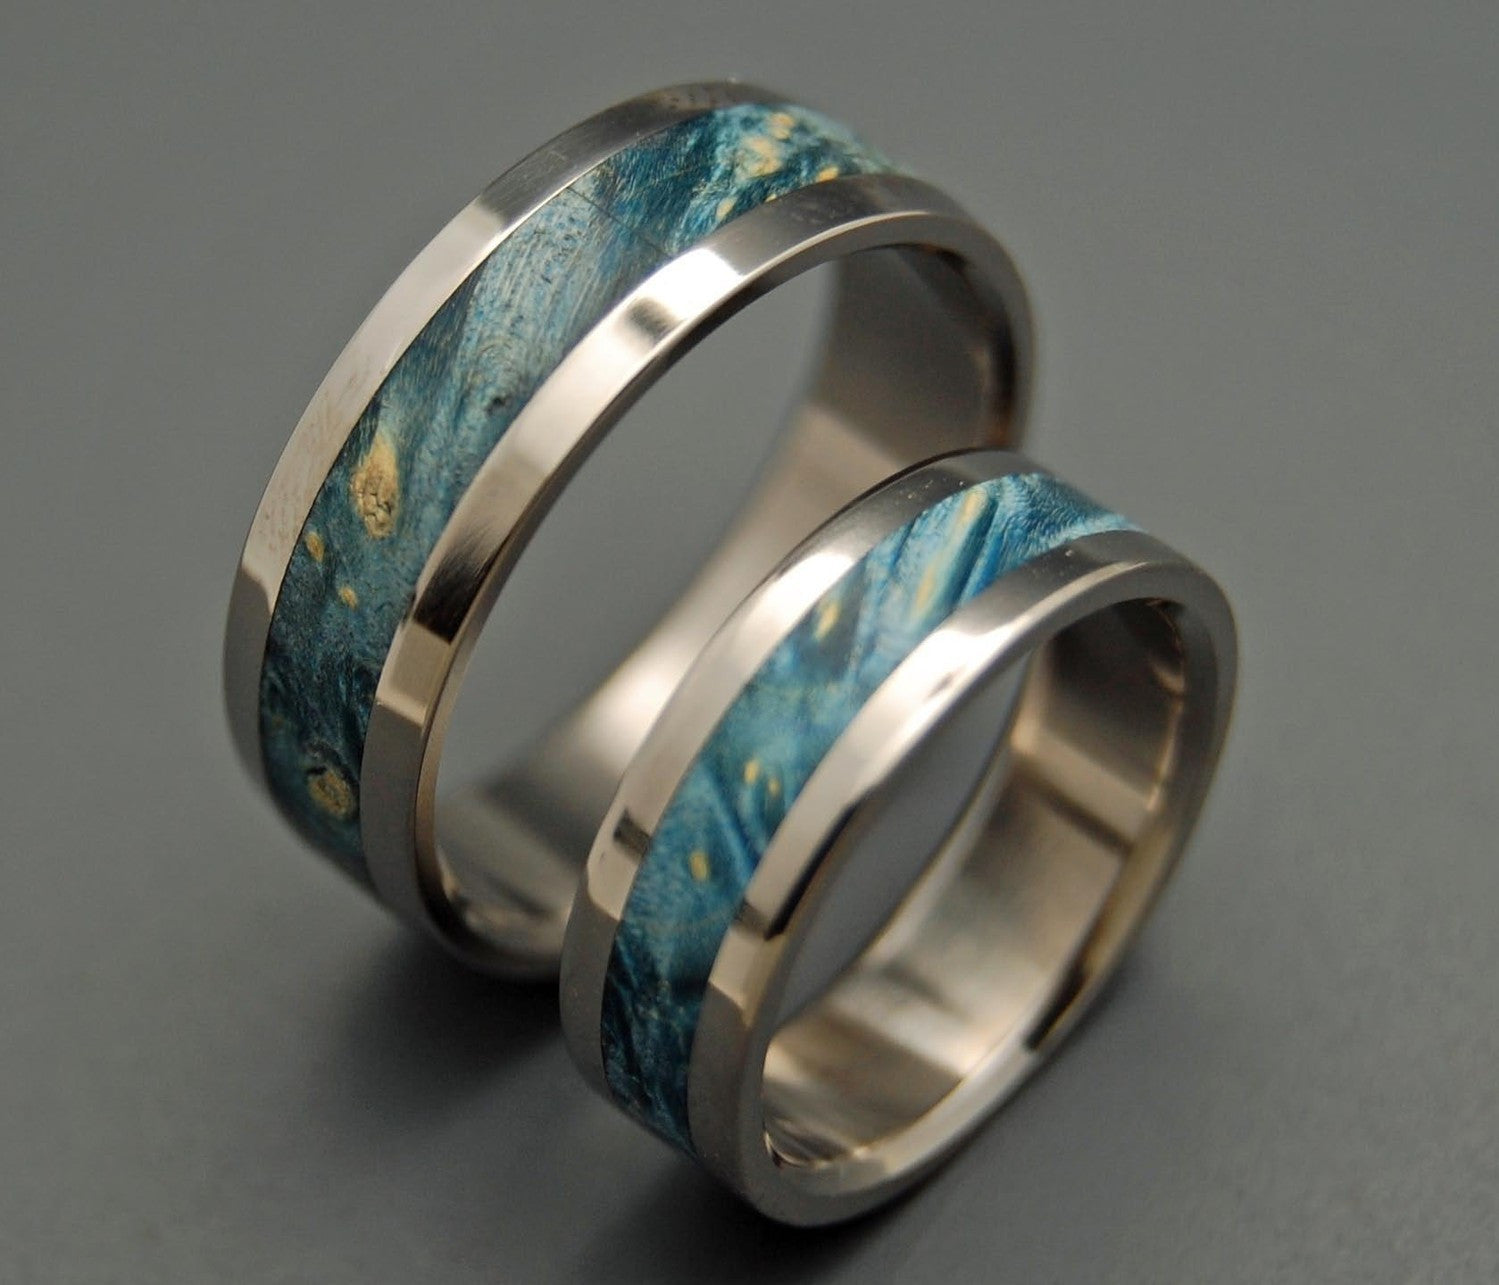 Inspirational Wedding Rings Represent